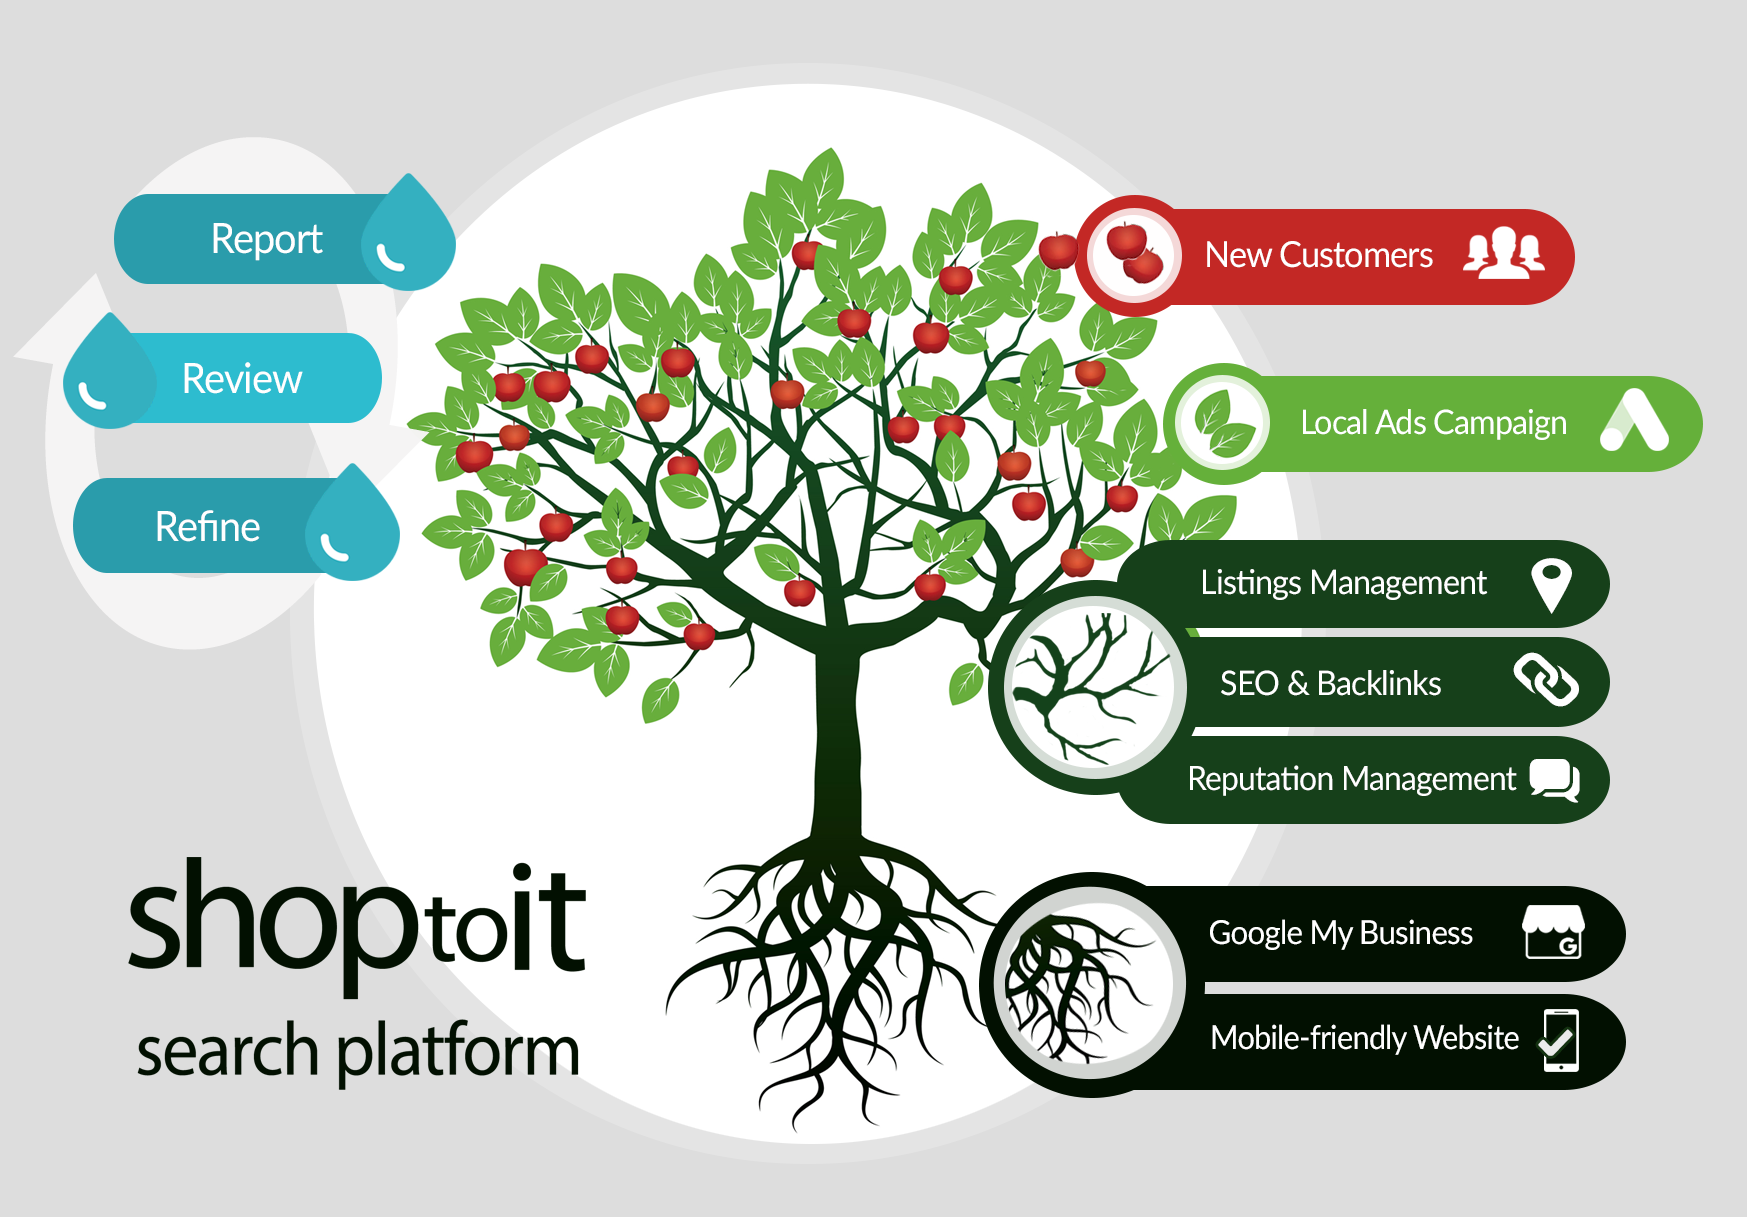 What Every Business Needs to Get New Customers | Shoptoit